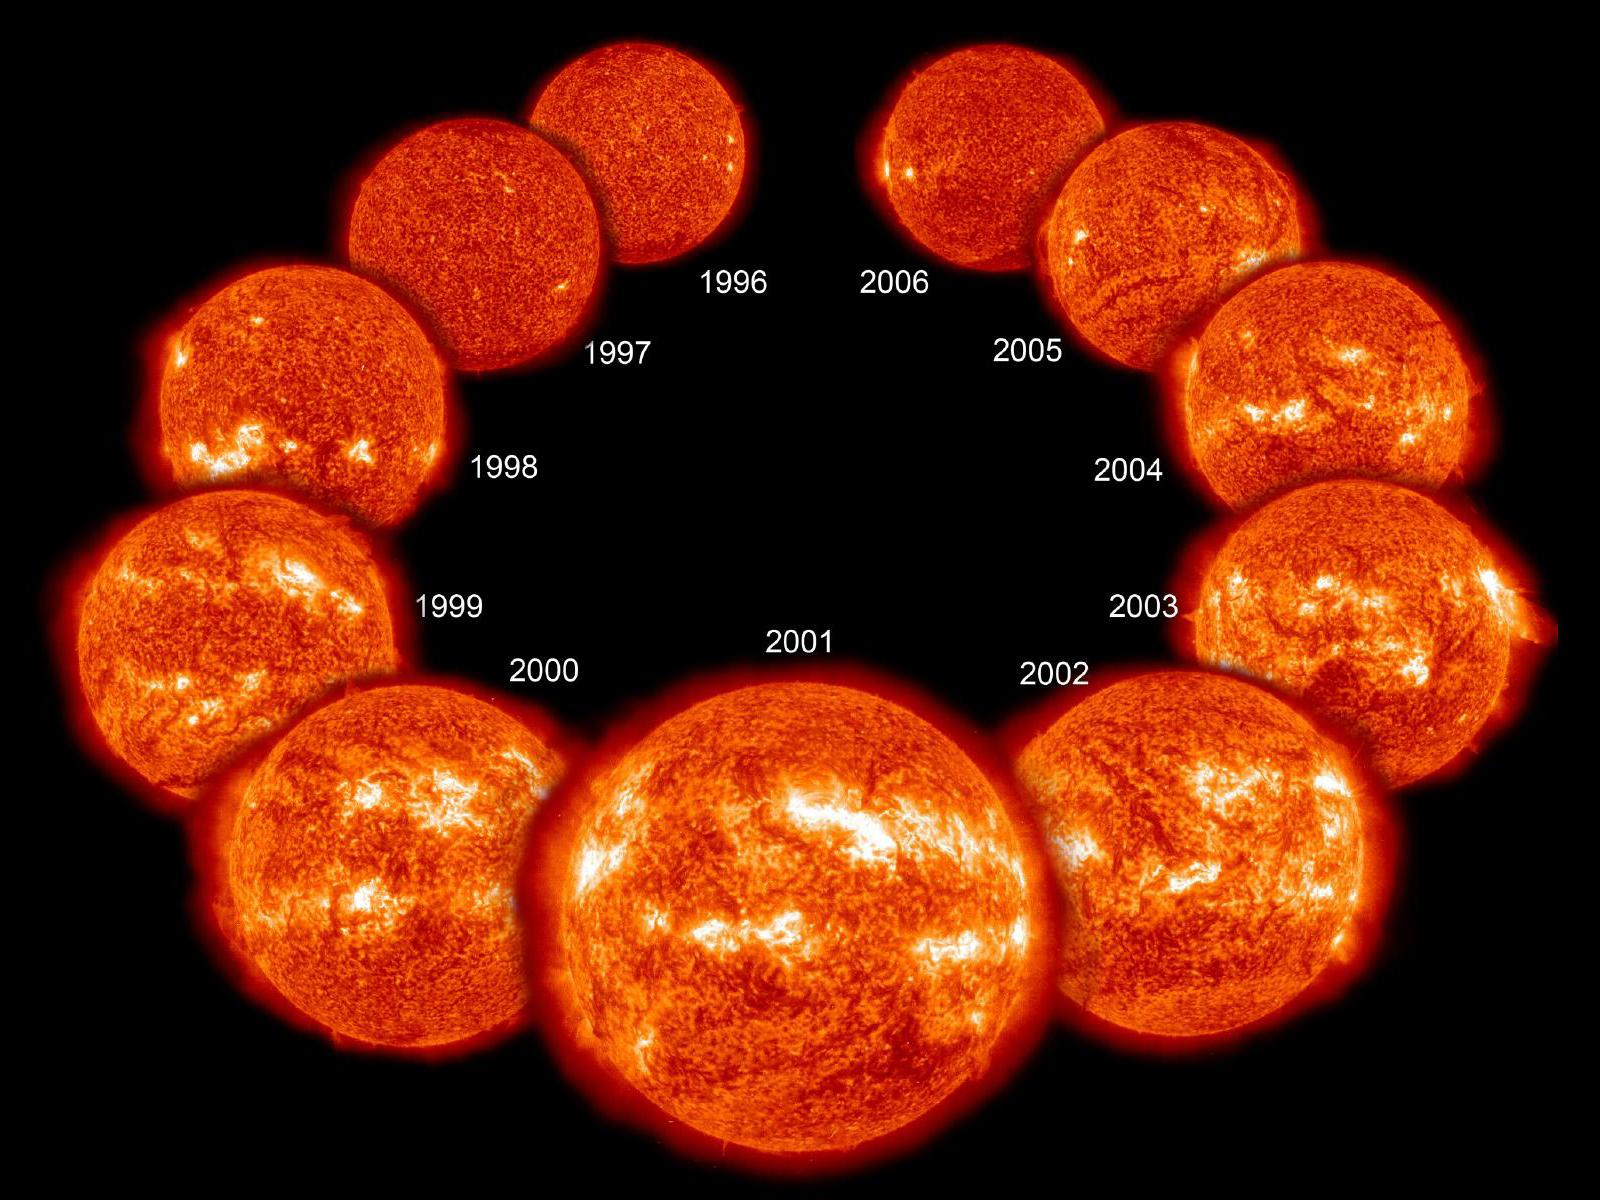 Images of the Sun during one solar cycle. Solar maximum occurred during 2001 while 1996 and 2006 were near solar minimum.